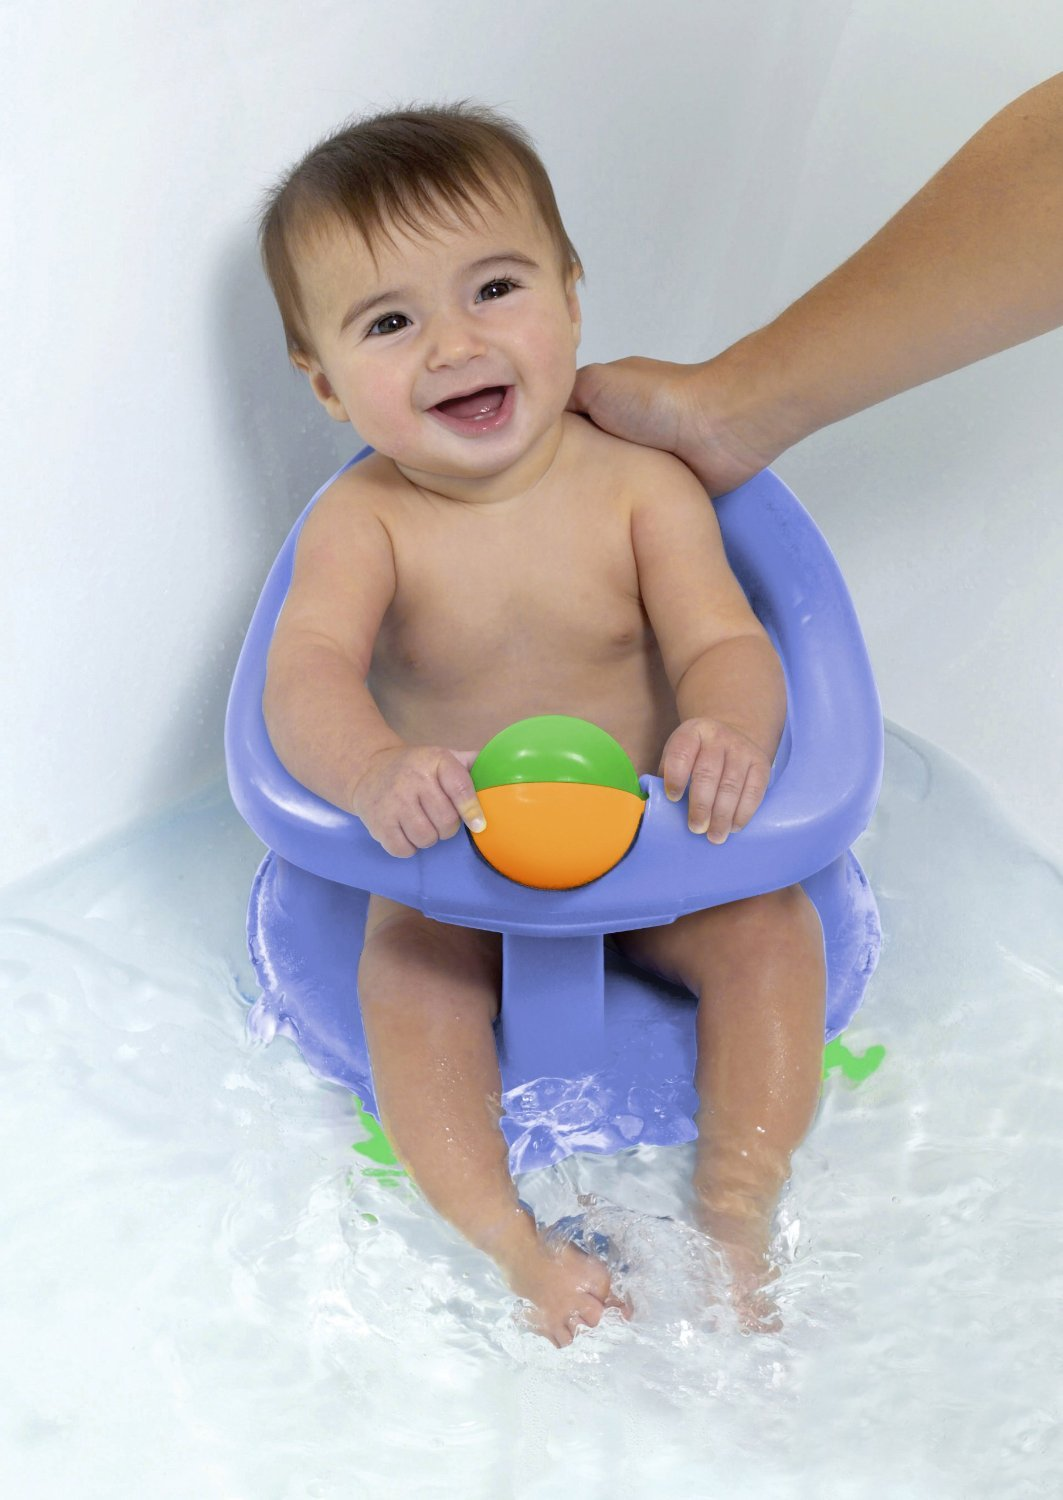 sc 1 st  Amazon UK & Safety 1st Swivel Bath Seat Pastel Blue: Safety 1st: Amazon.co.uk: Baby